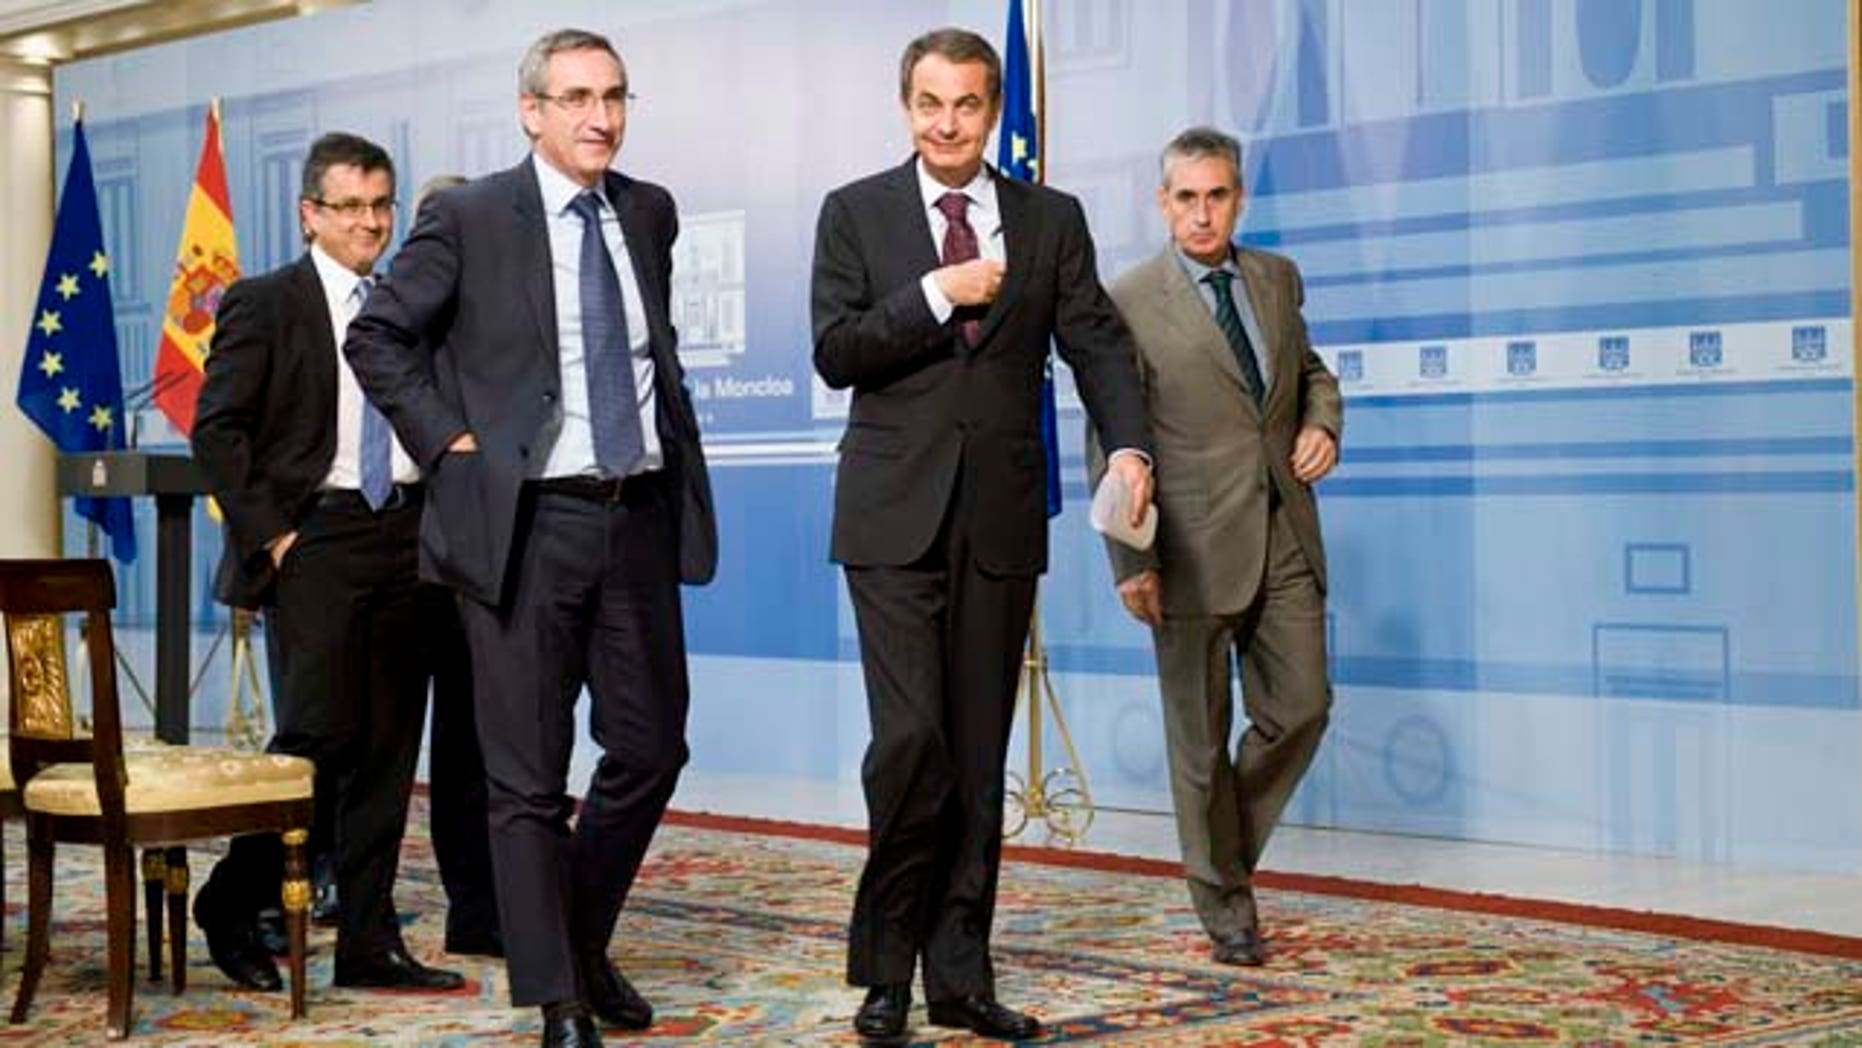 Spain's Prime Minister Jose Luis Rodriguez Zapatero, center, leaves after a press conference at the Moncloa Palace, in Madrid, Monday Sept. 26, 2011. Spain's prime minister dissolved Parliament on Monday, setting the stage for a Nov. 20 general election that is likely to focus on an economy saddled with 21 percent unemployment, anemic growth and gloomy future prospects.   (AP Photo/Daniel Ochoa de Olza)